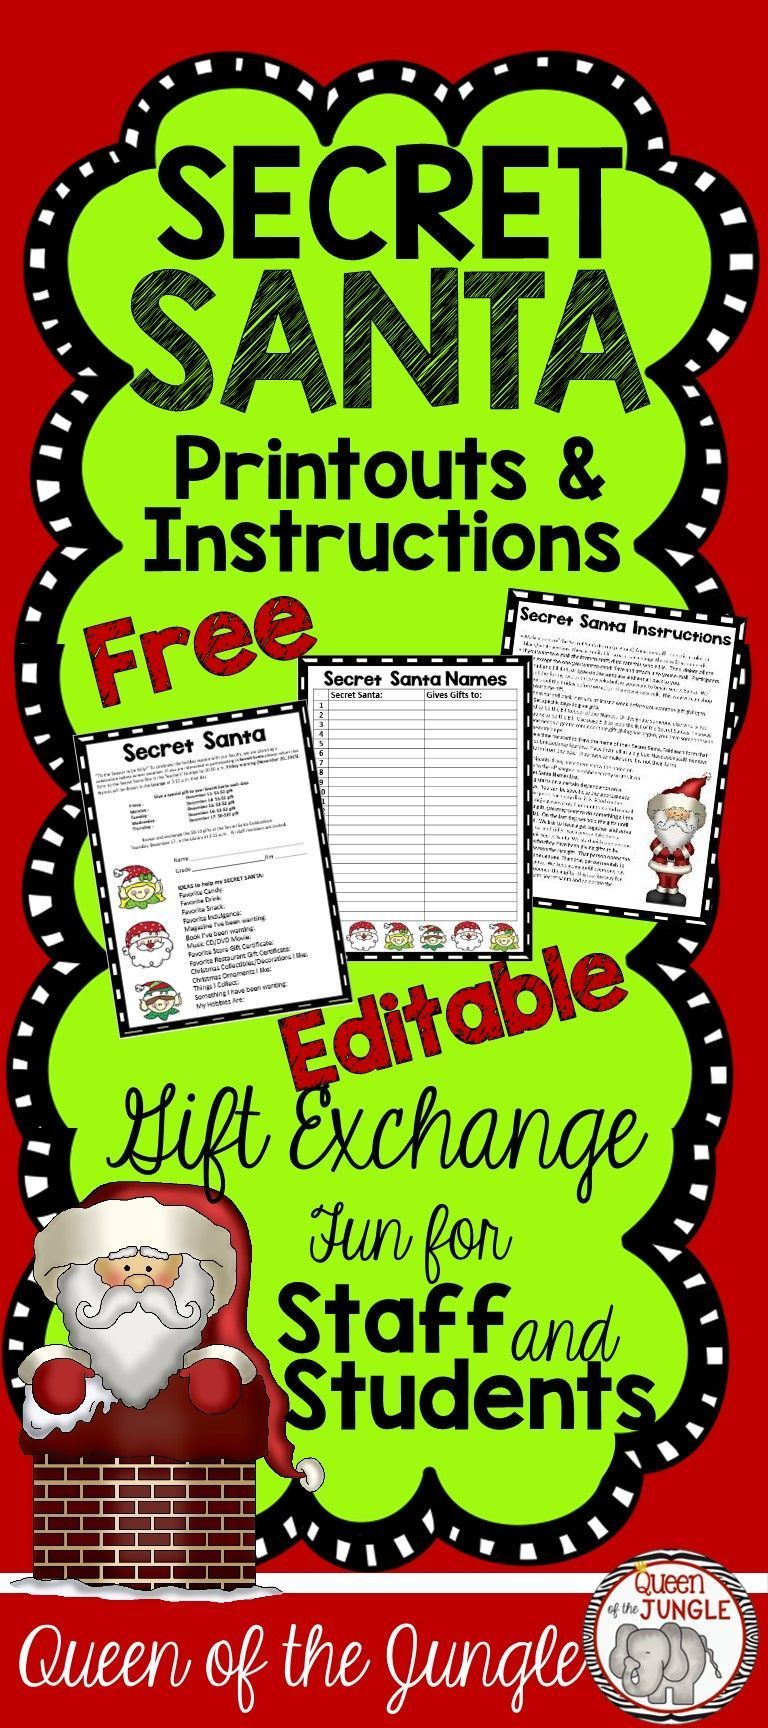 Secret Santa Gift Exchange Free #secretsantaideasforwork Secret Santa Gift Exchange. Great for Students or Staff. Free Printables and Instruction.Includes Secret Santa Letter and Name List. Editable pages included. #fashion #secretsantagifts